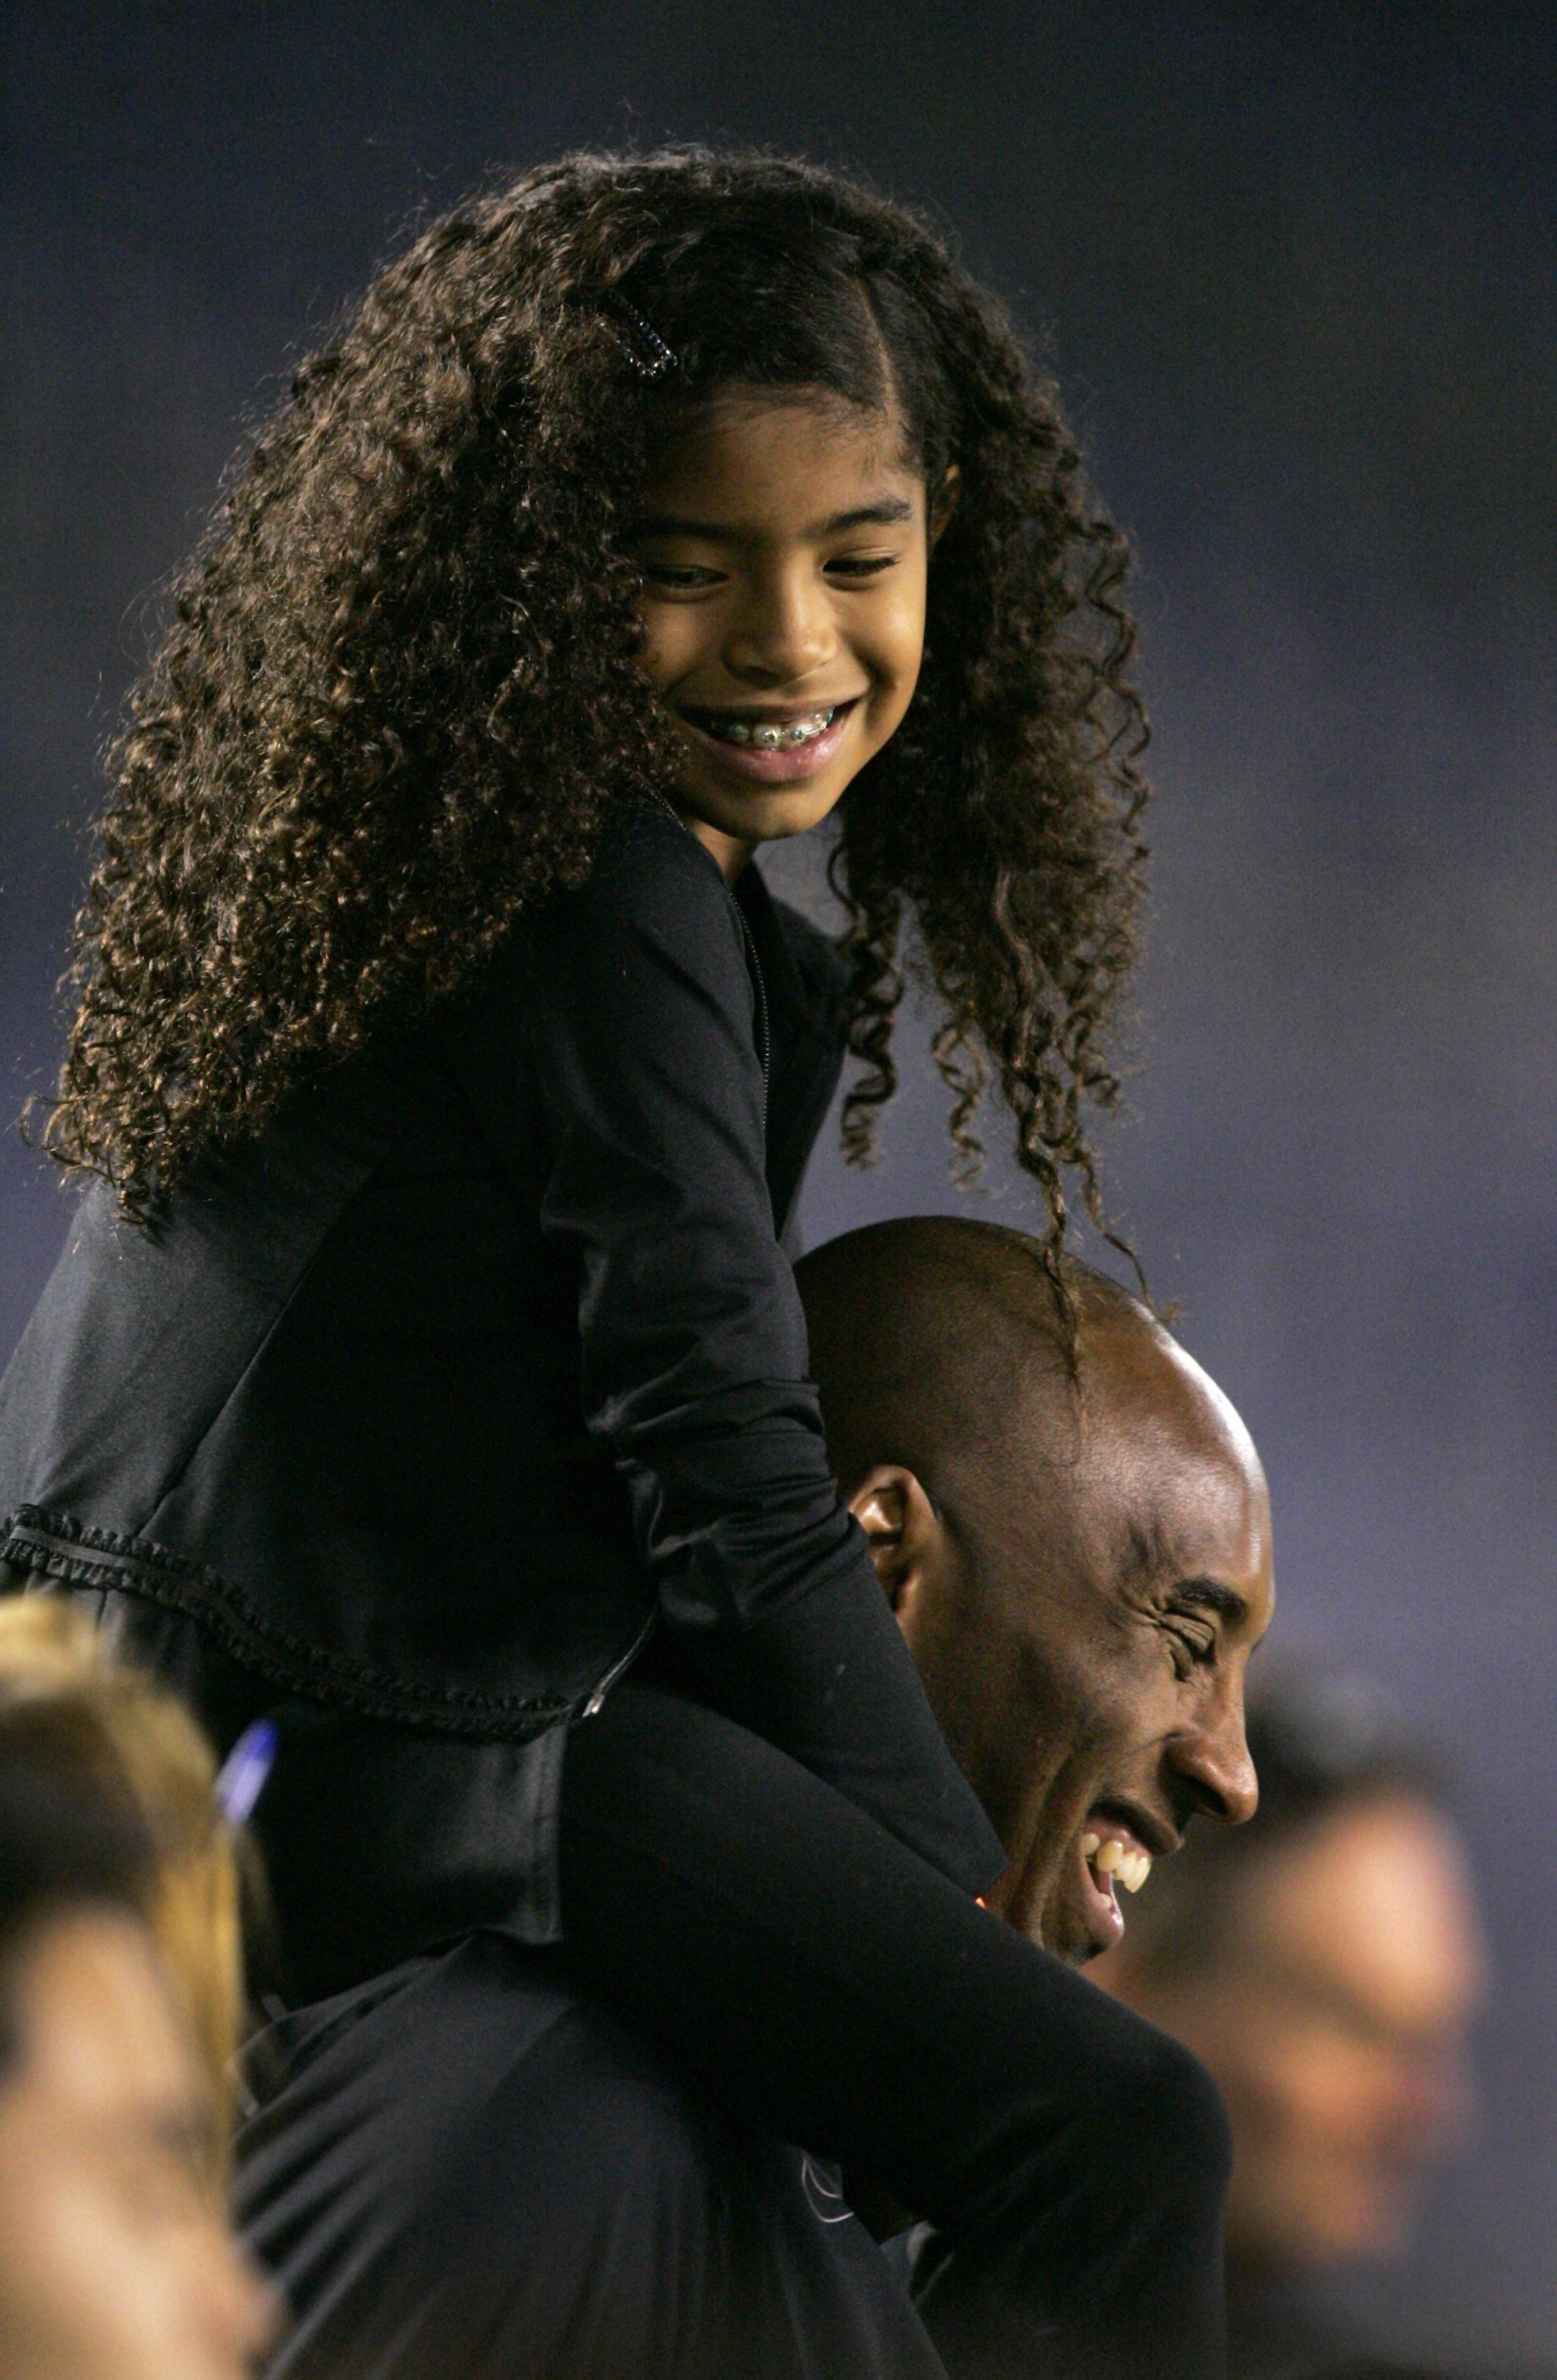 Kobe Bryant with his daughter Gianna Maria-Onore Bryant at the game against the United States and China during an international firendly match  on April 10, 2014, in San Diego, California. | Source: Getty Images.